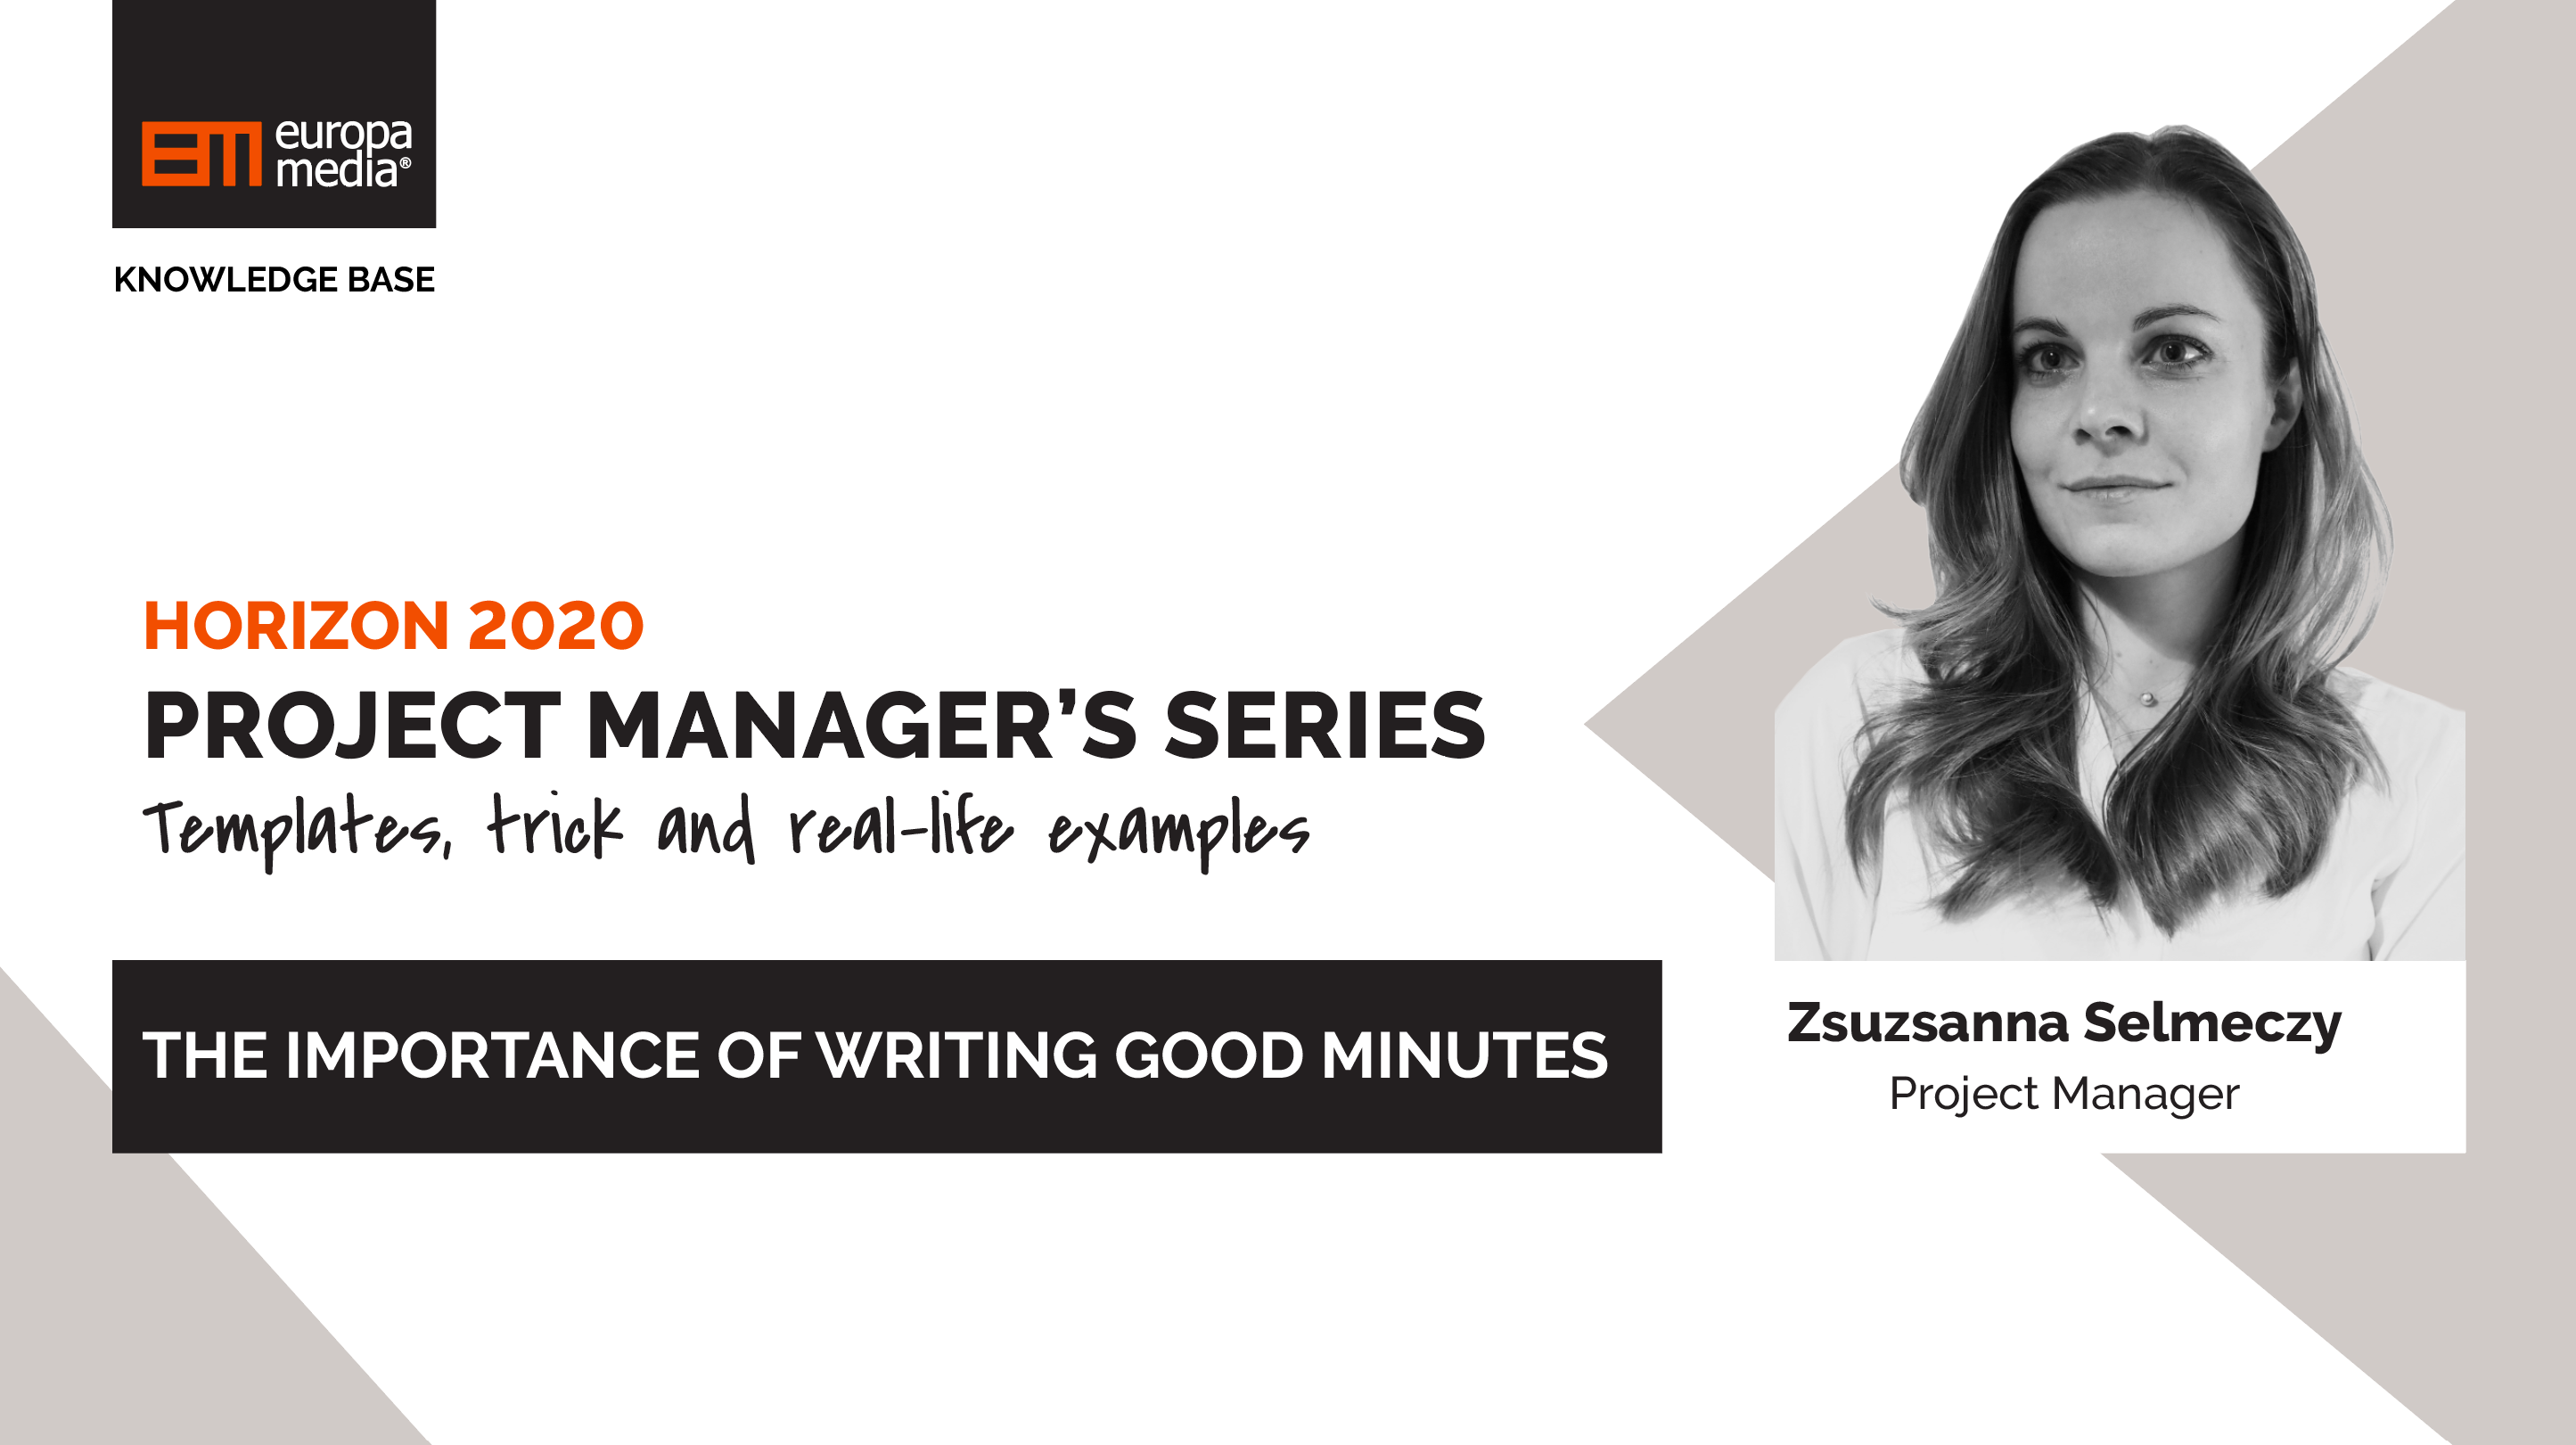 The importance of writing good minutes